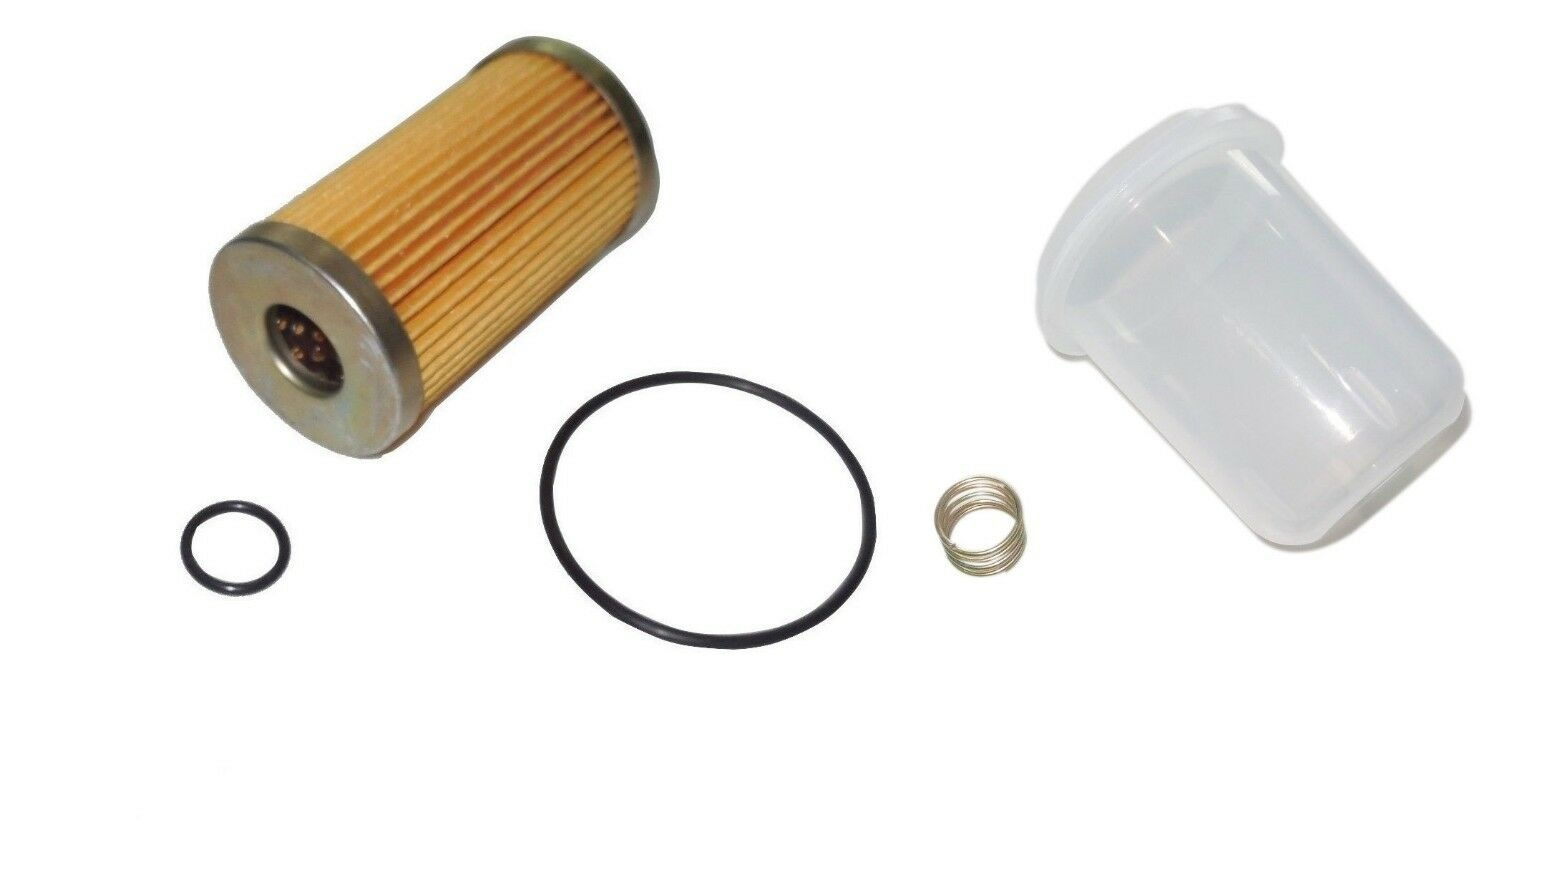 new ford holland fuel filter/bowl/spring t1530, t2310, t2320, t2330, t2410,  t2420  kumar bros usa